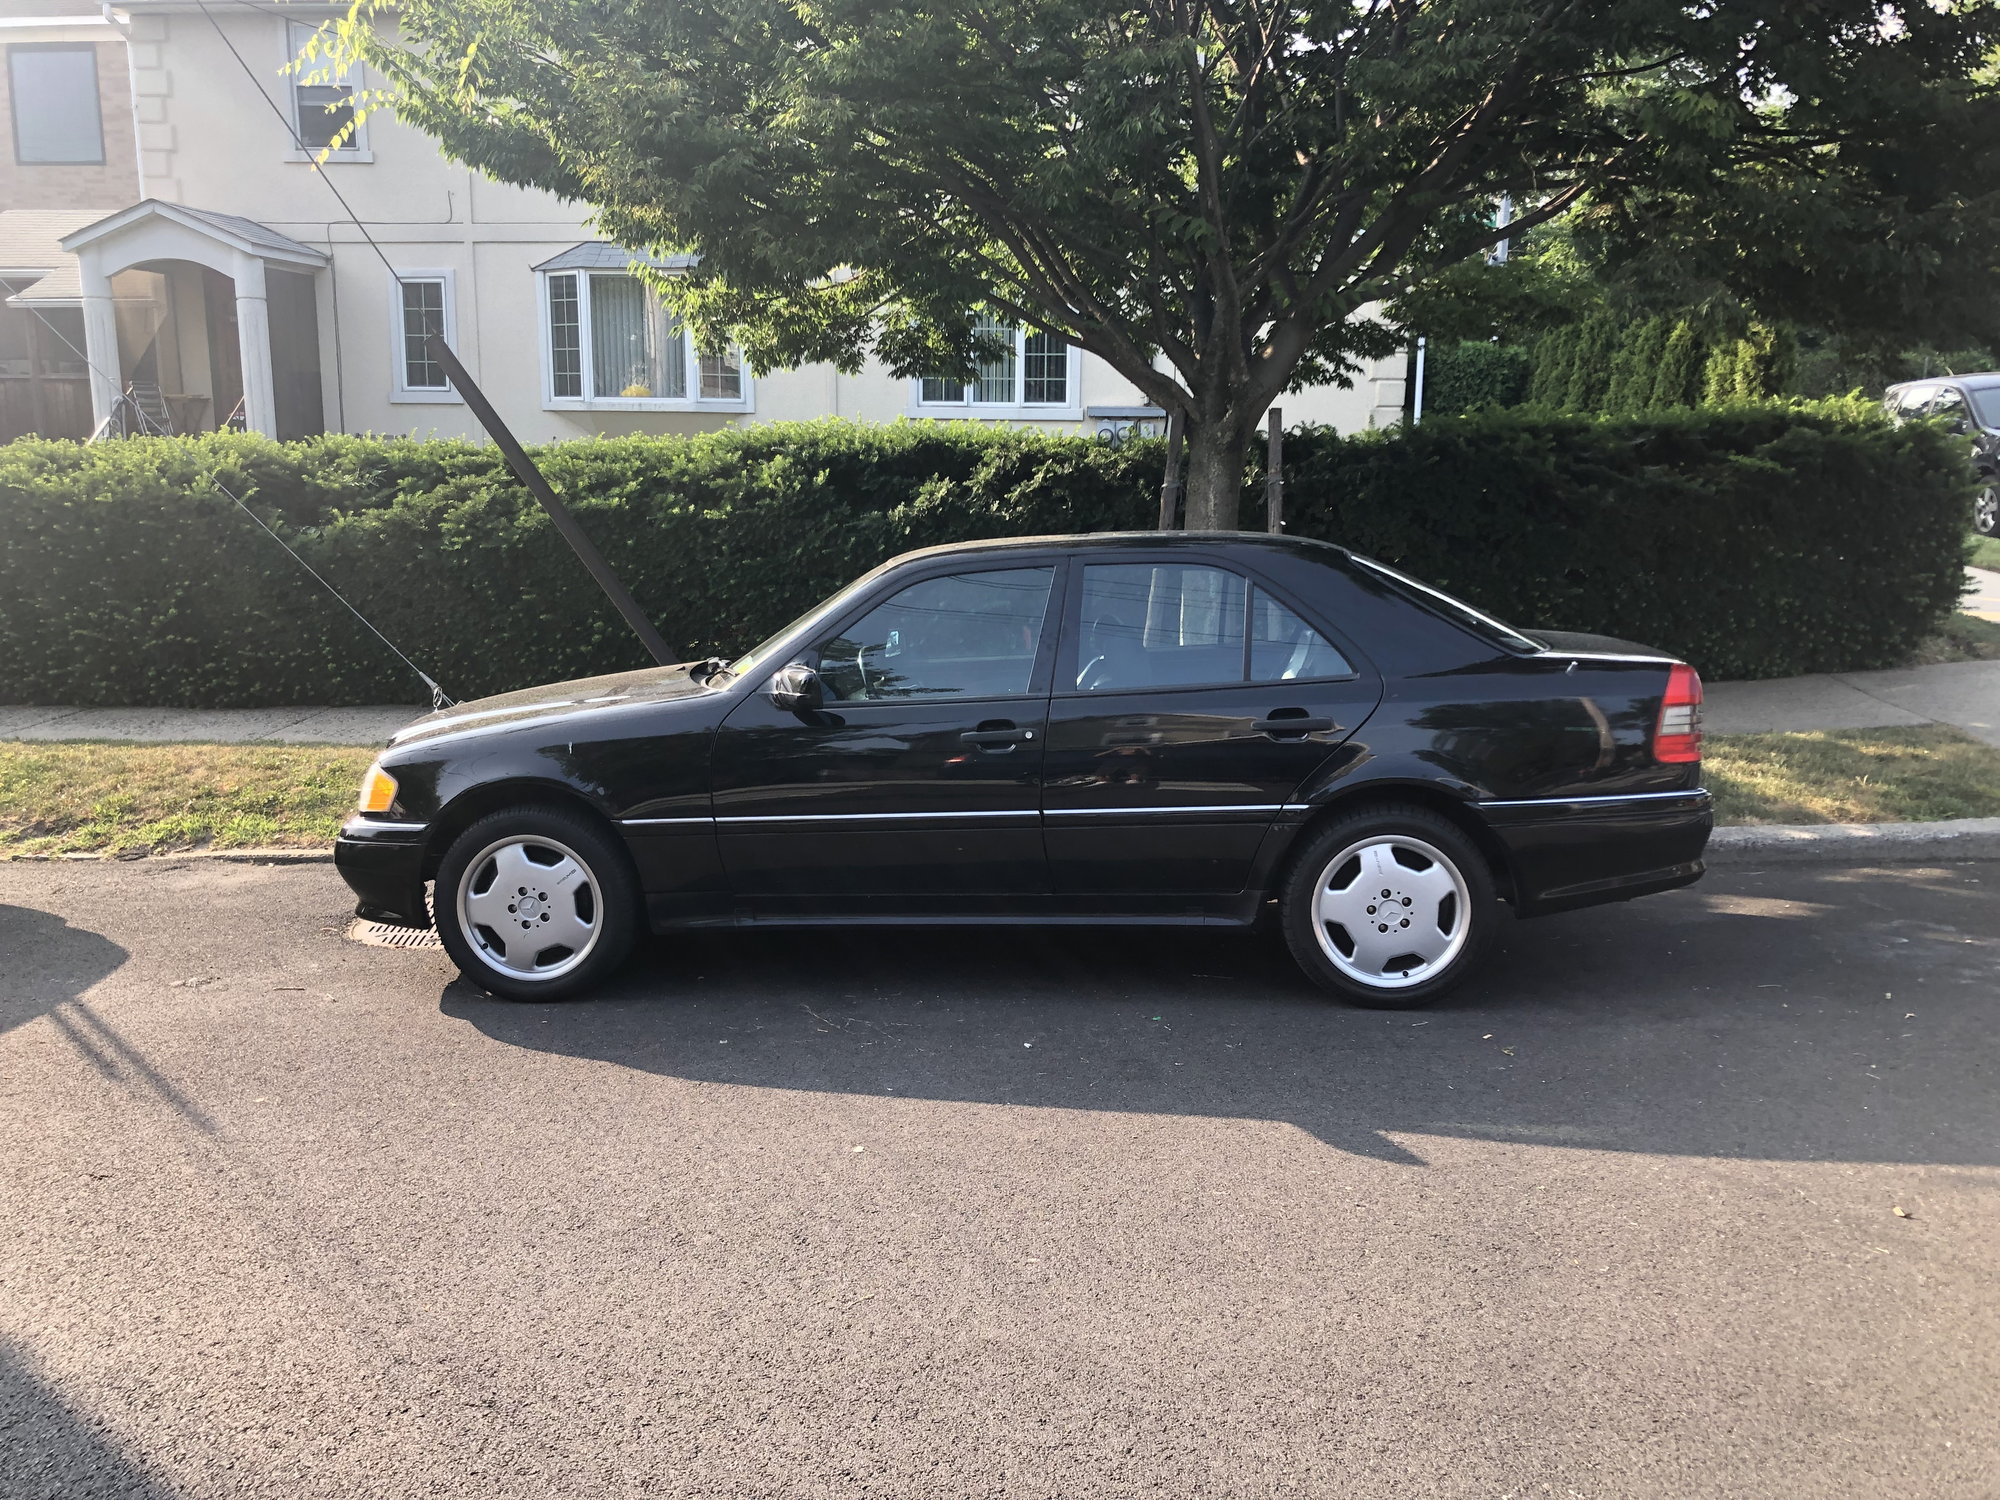 hight resolution of c230k was my first car and is is low milage at 84k put about 10k miles on it so far in my one year ownership c280 has 89k on the dash but otherwise here s